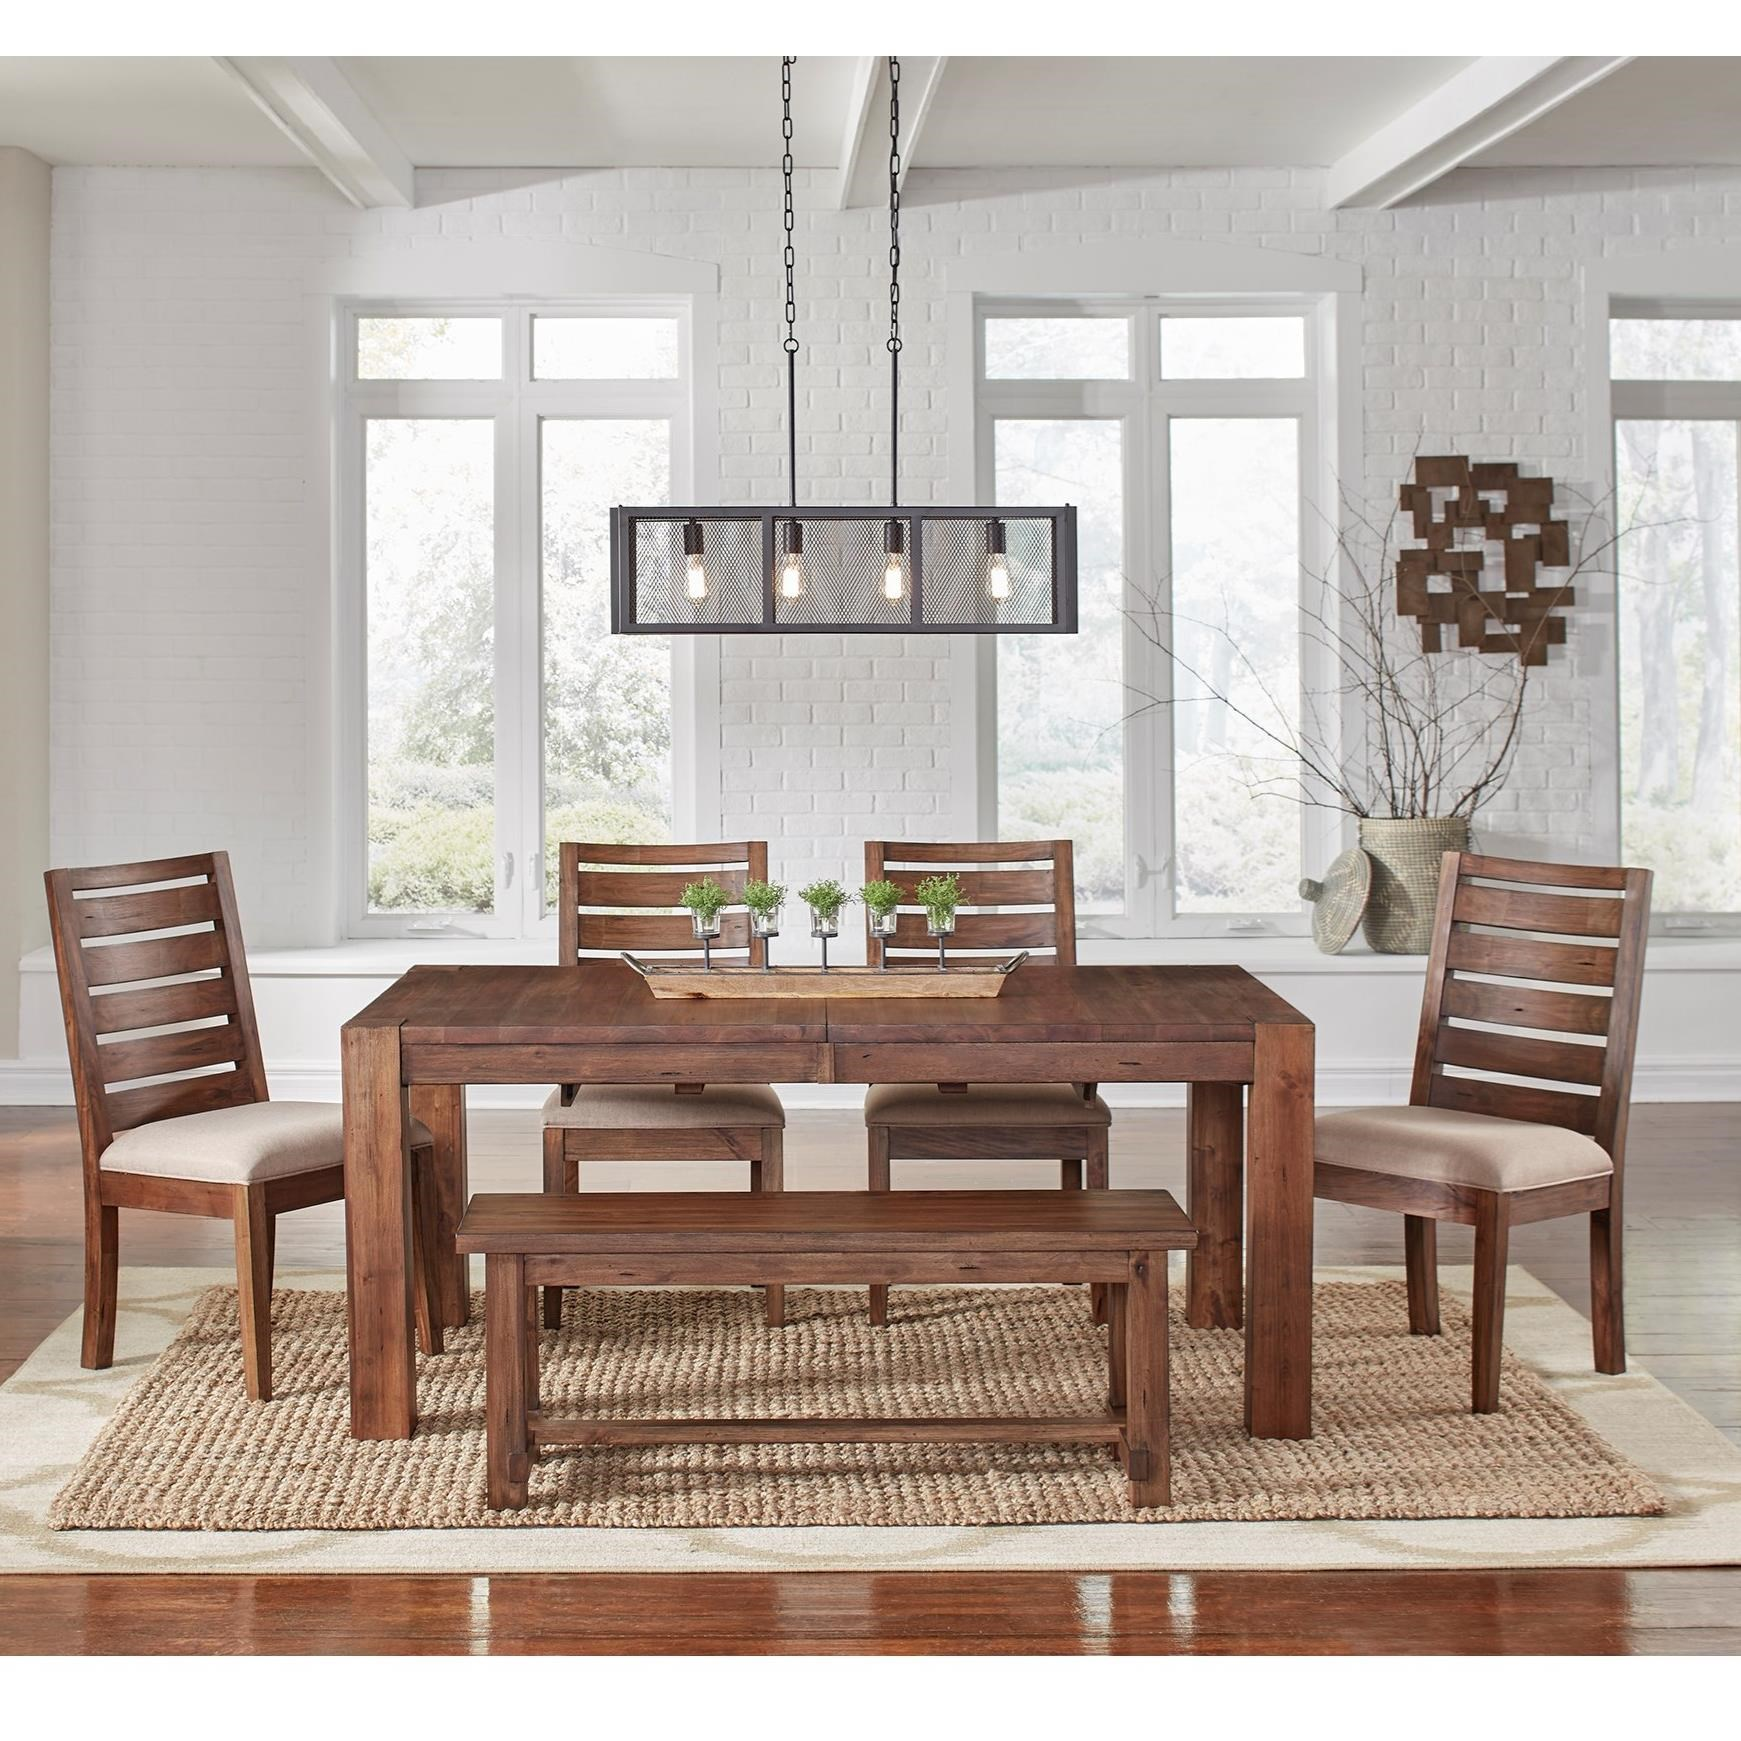 Anacortes 6 Piece Dining Set by AAmerica at Zak's Home